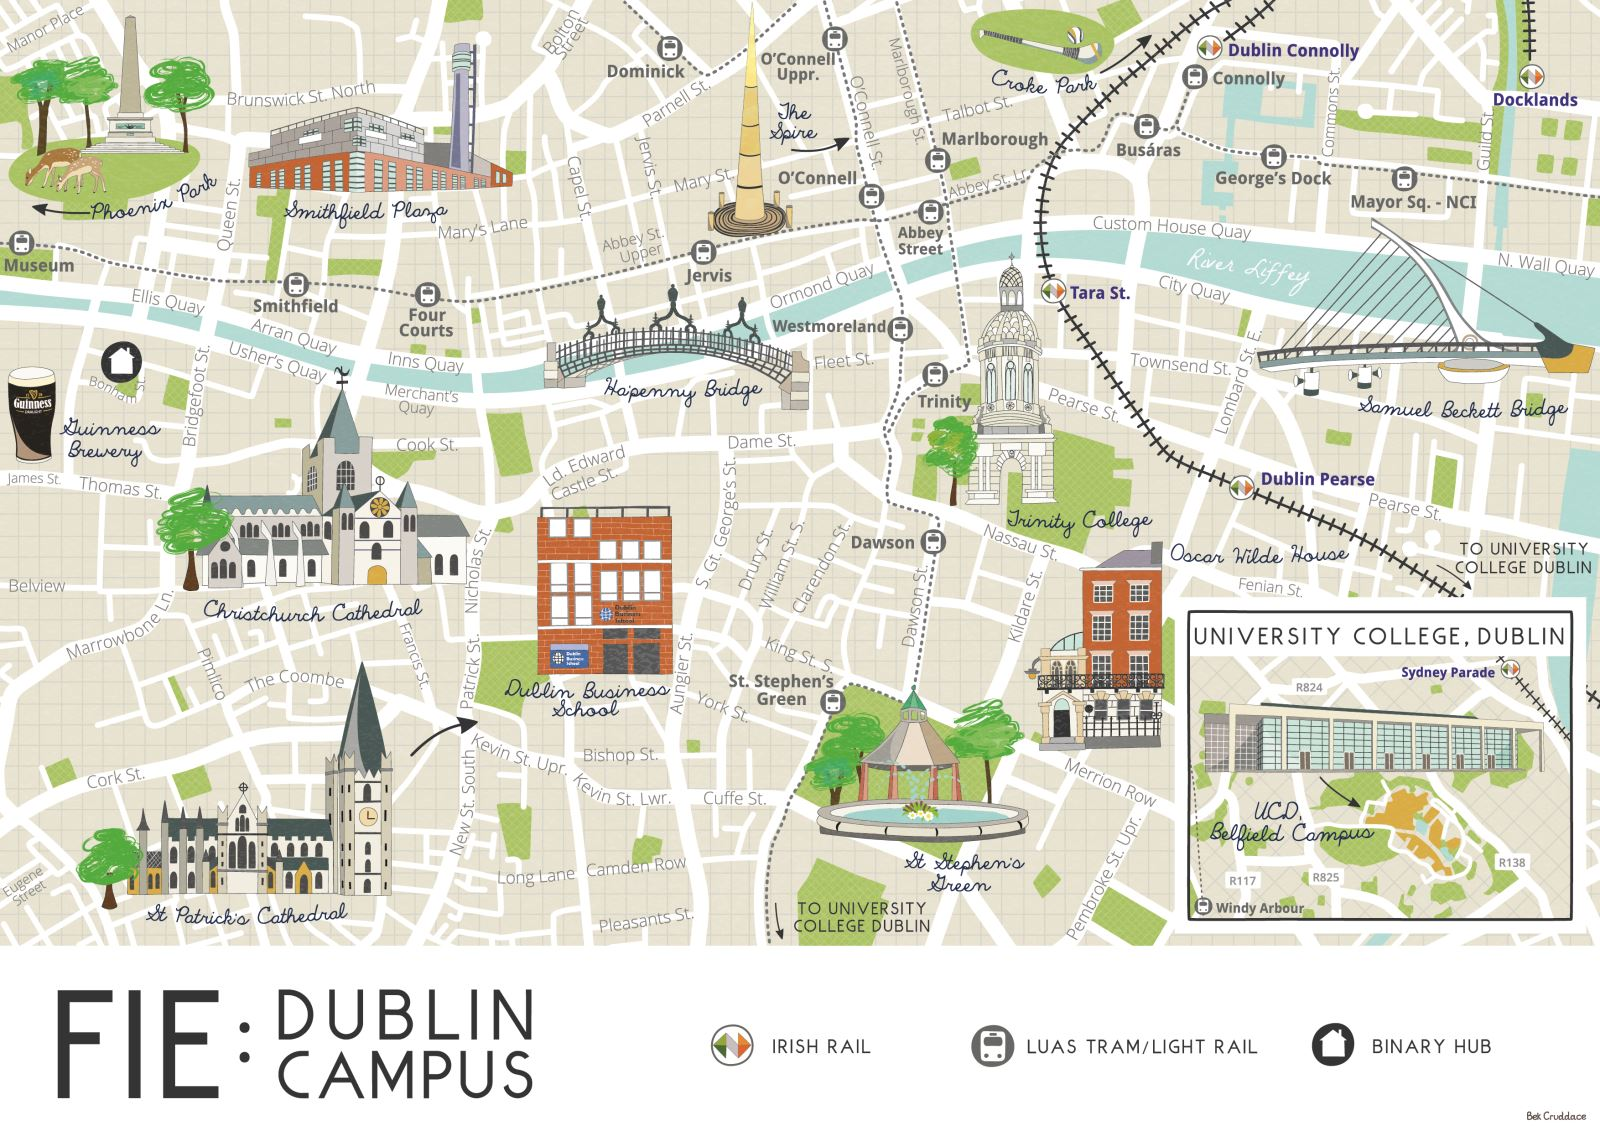 City Map Of Dublin Ireland.Studying In Dublin Ireland Undergraduate Admissions Baylor